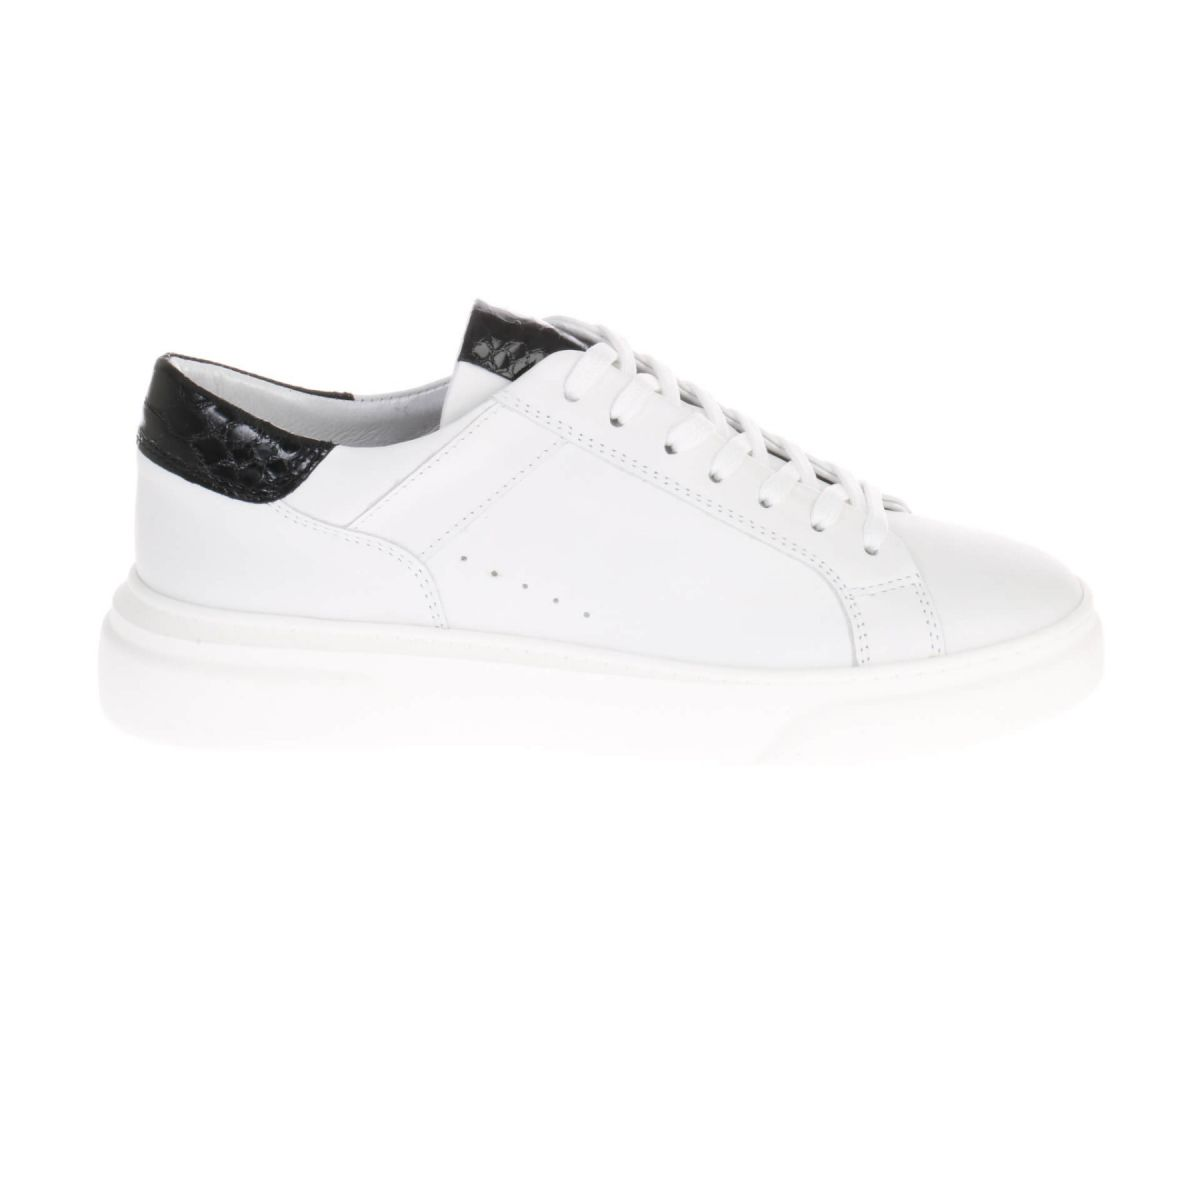 HIP D1917 Sneakers Wit Zwart Croco